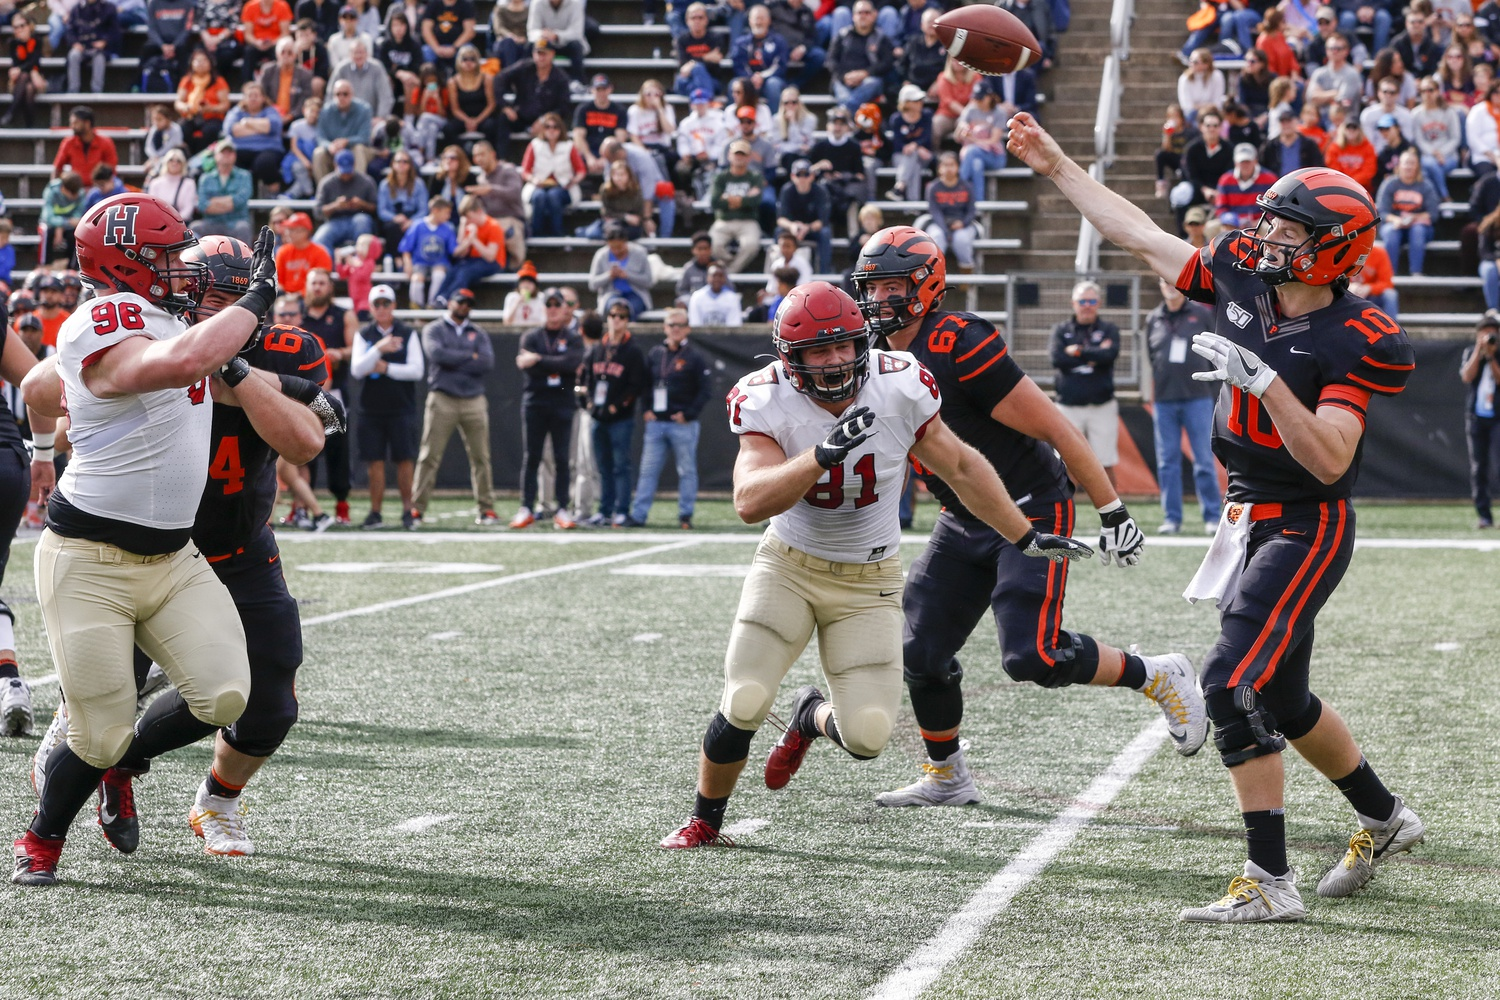 Harvard tight end Haven Montefalco just misses sacking Princeton quarterback Kevin Davidson, who went on to complete three touchdowns in the Tigers' victory.